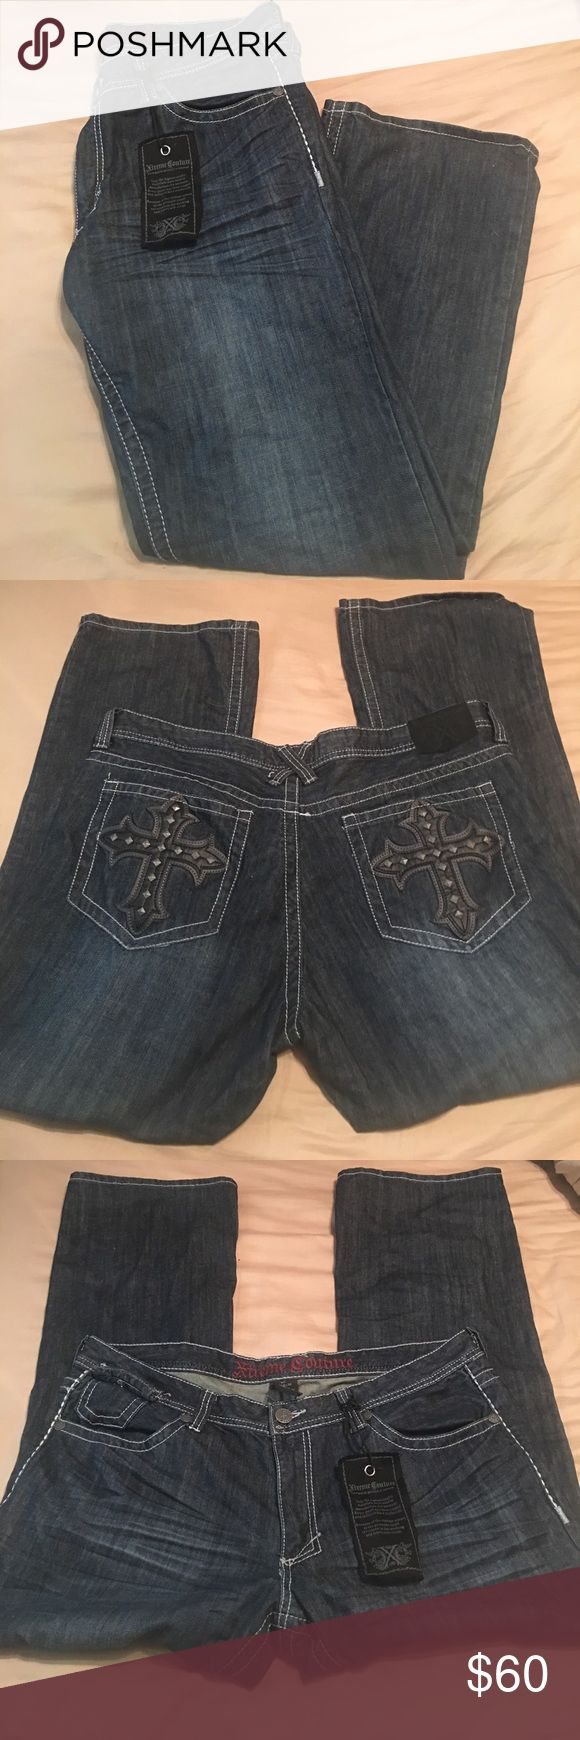 NWT Xtreme Couture by Affliction men's jeans NWT Xtreme Couture by Affliction men's jeans for sale! Size: 40(W) X 32 (L) tag states material is 100% cotton. Dark wash with whiskering detailing along upper thigh area, back pockets have black (with silver detailing) crosses. Affliction Jeans